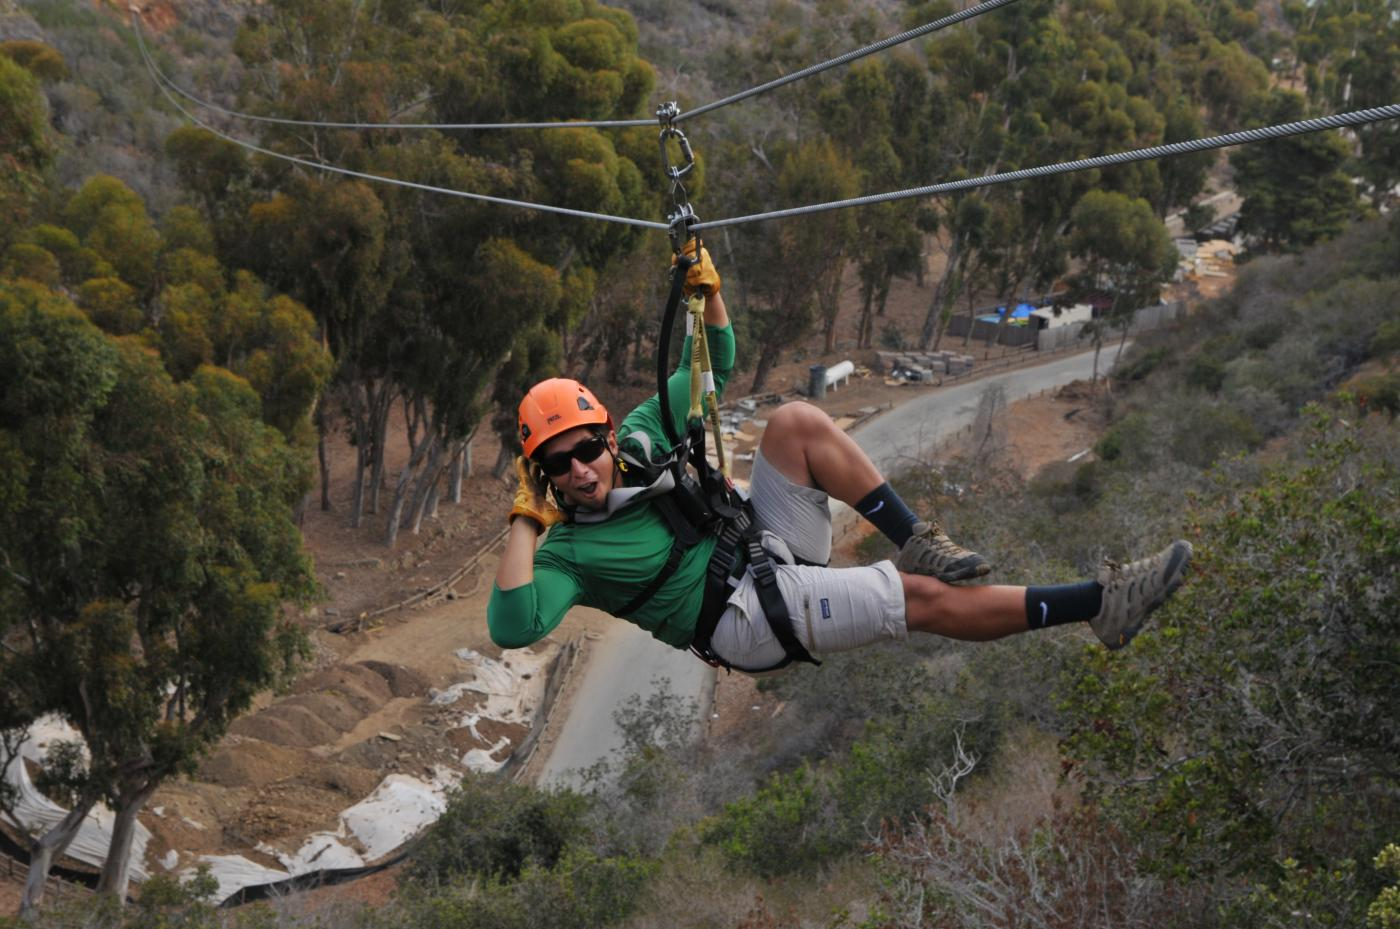 Catalina Zipline Adventure in Catalina Island, CA